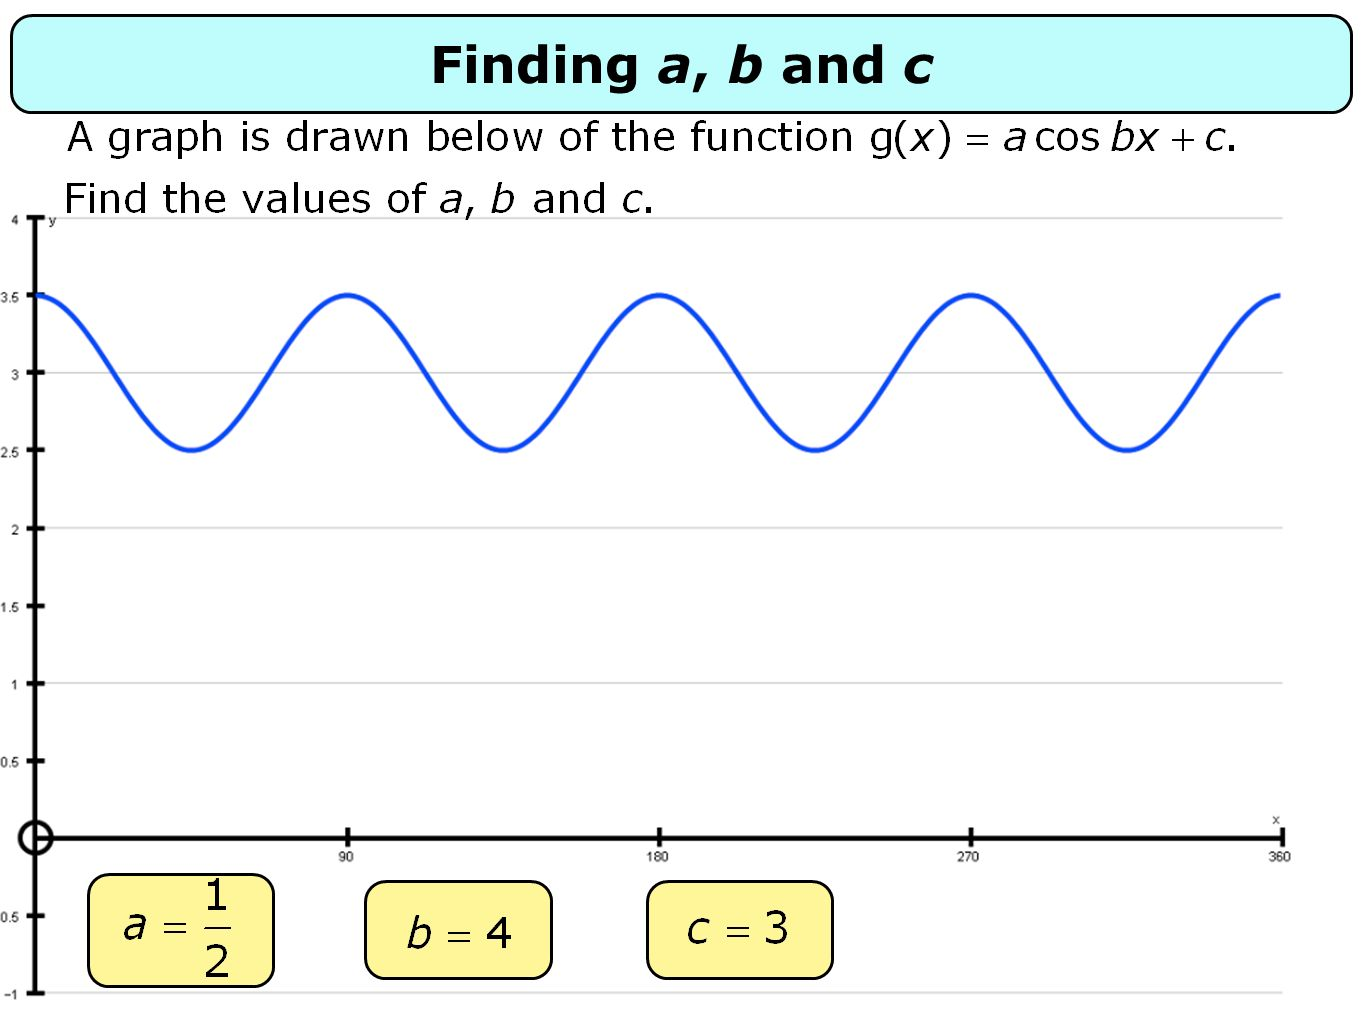 Finding a, b and c